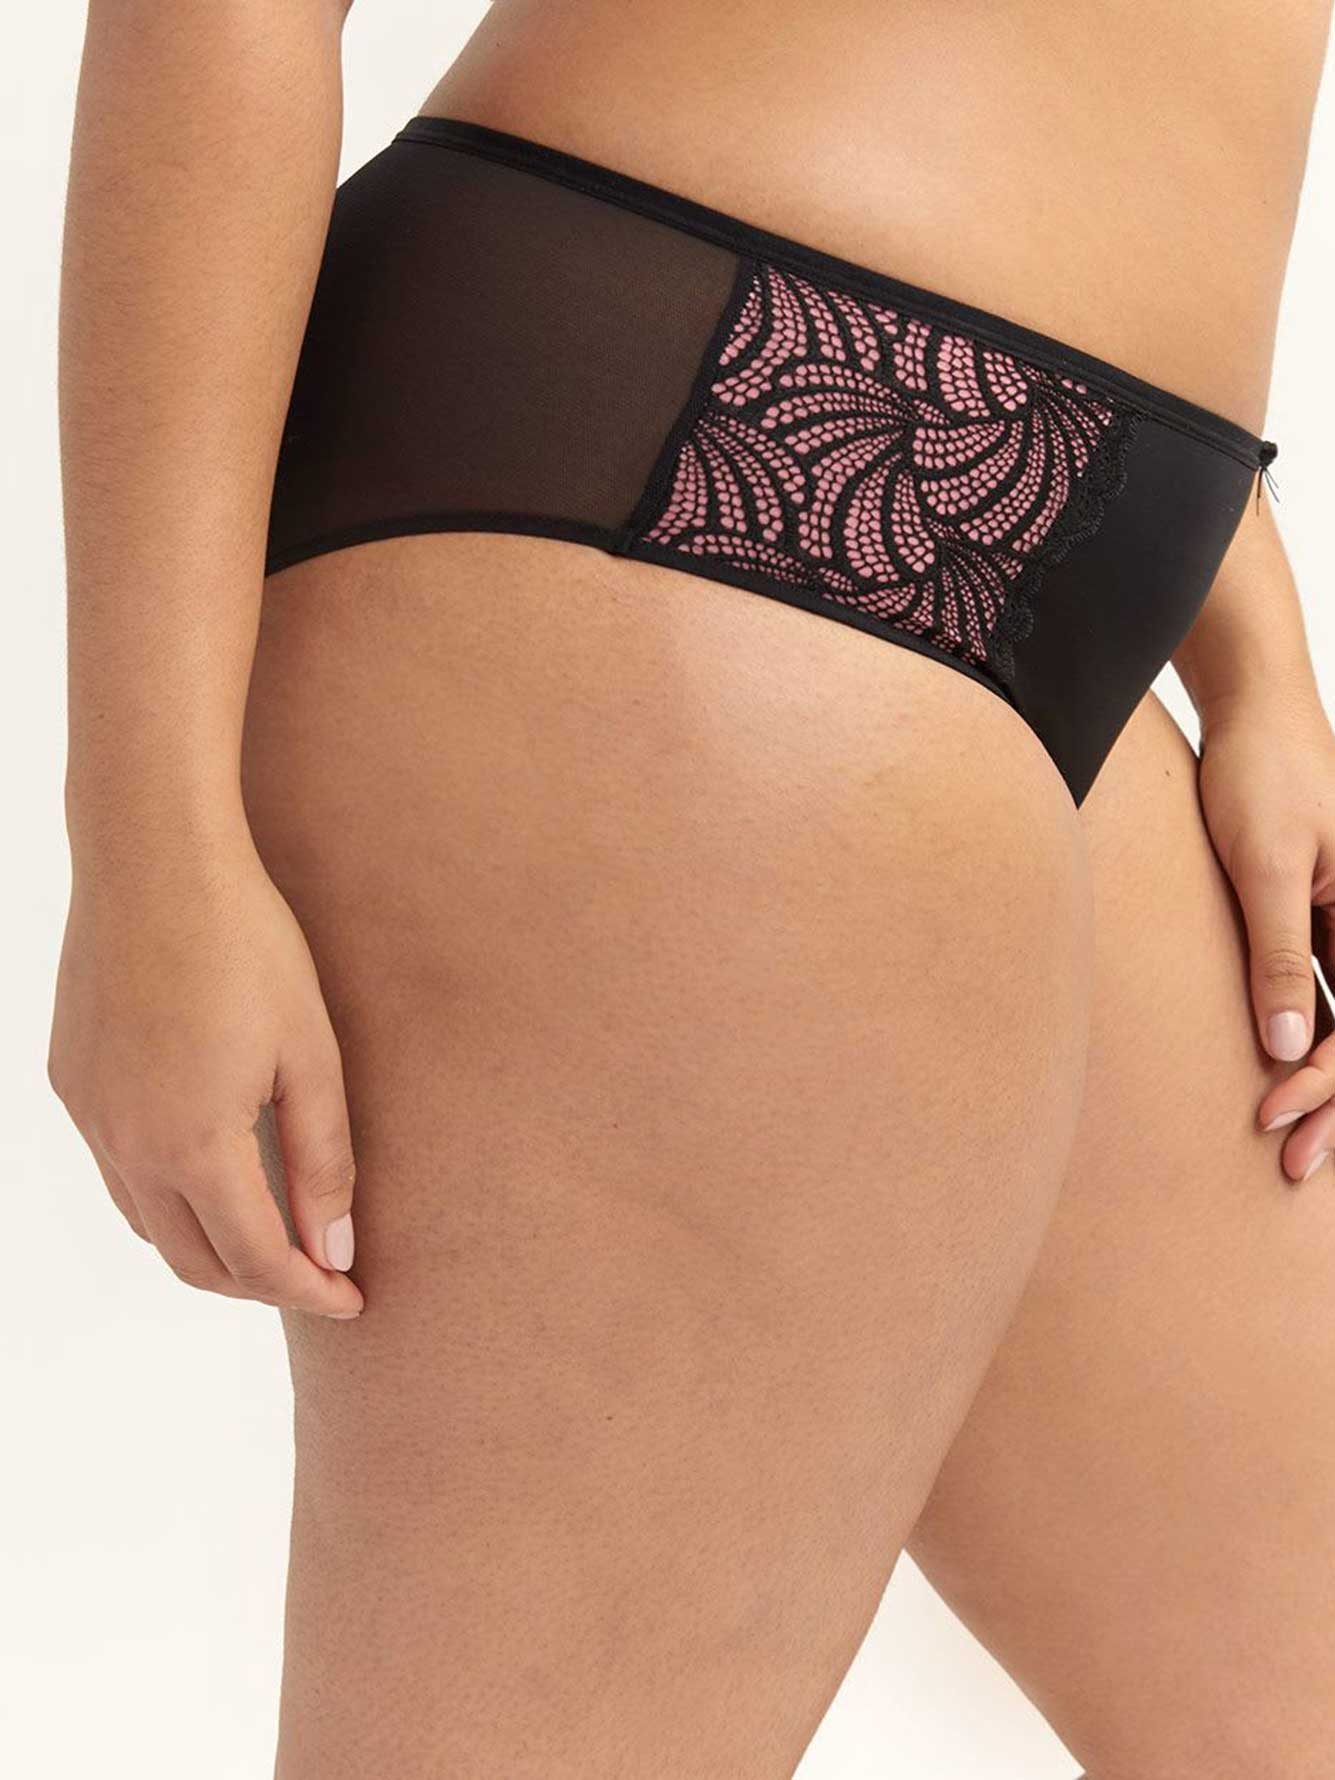 Lace Embellished High Cut Panty - Ashley Graham